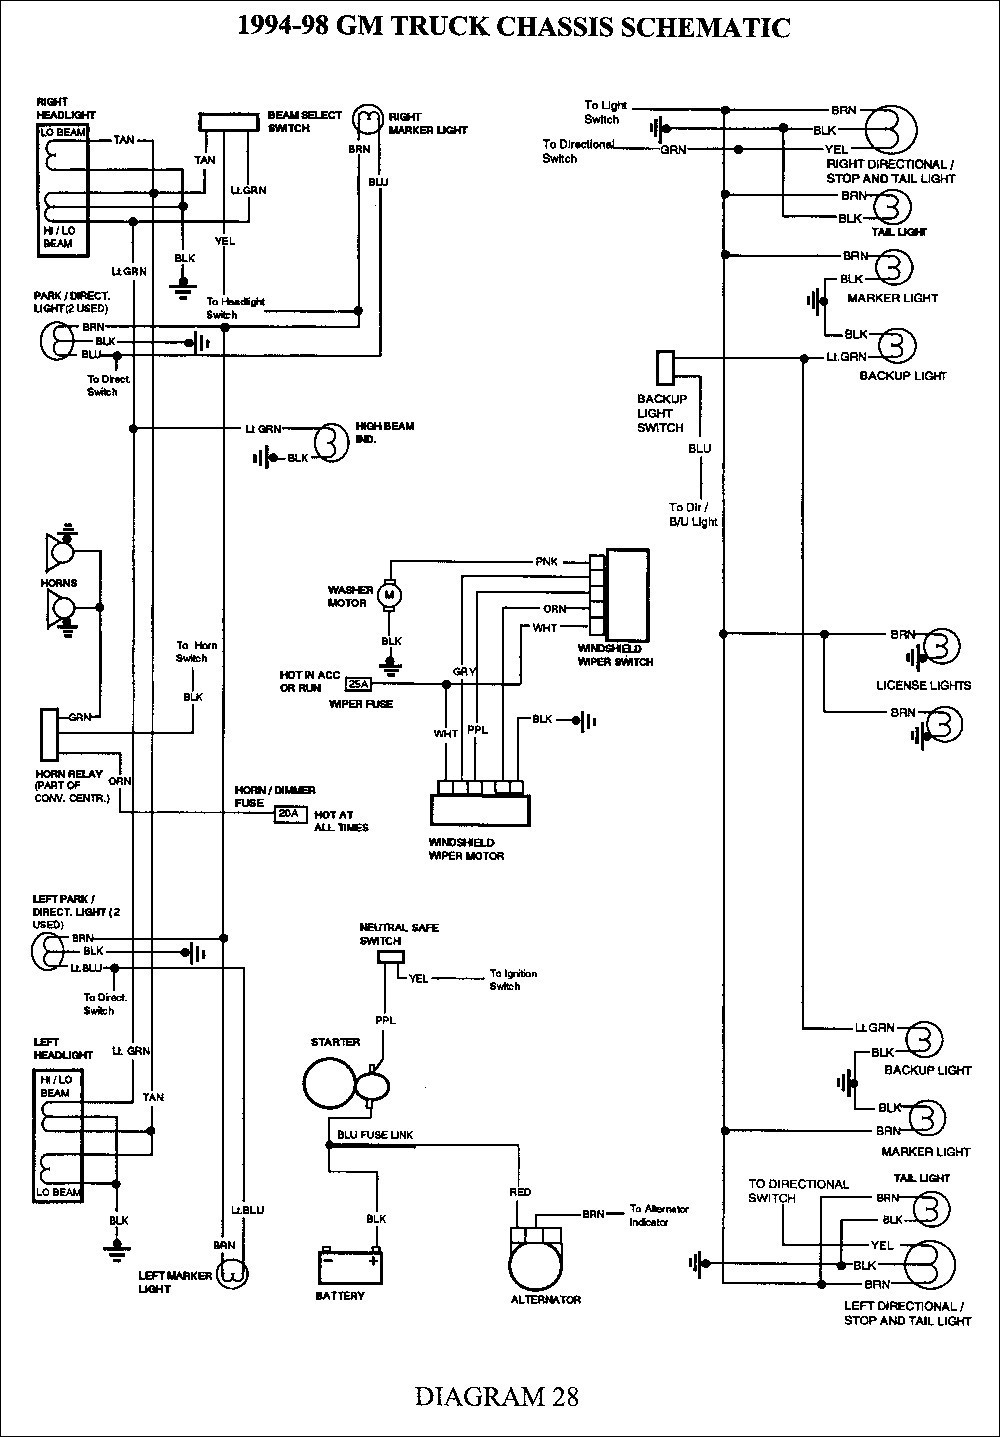 medium resolution of 7500 wiring diagram gm wiring diagram show 7500 wiring diagram gm wiring diagram mega 7500 wiring